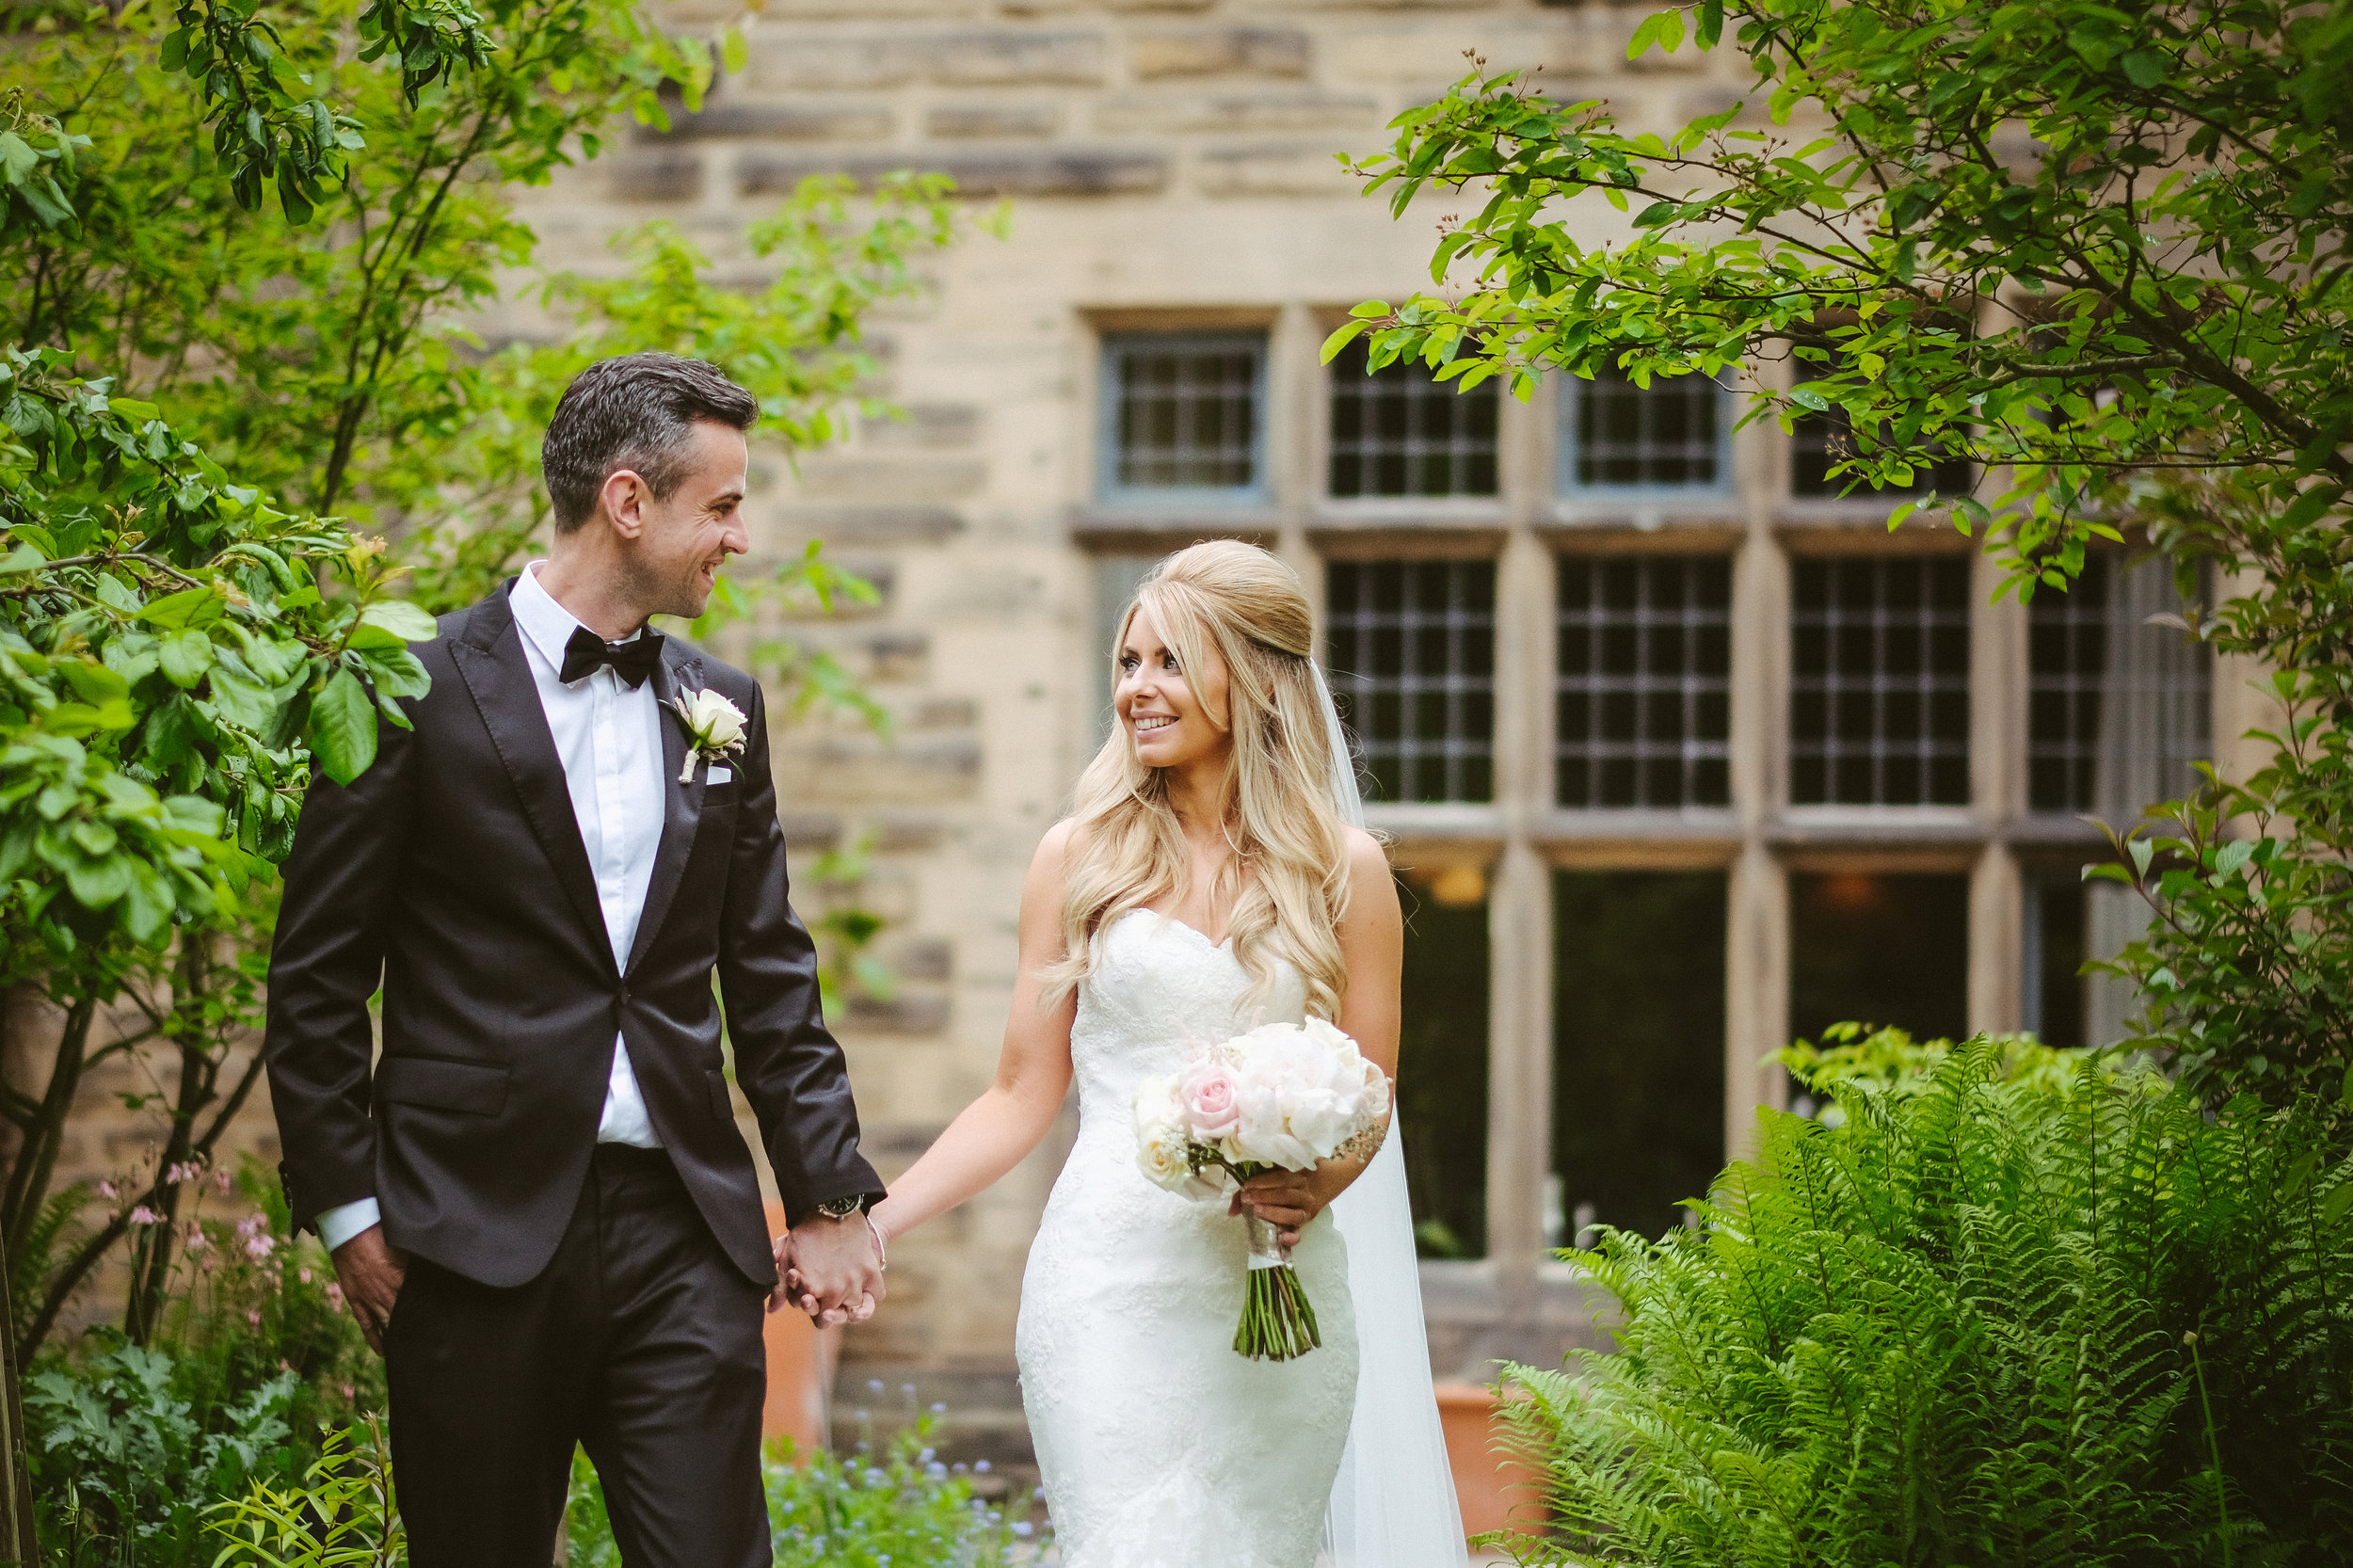 How to feel confident for your wedding photos